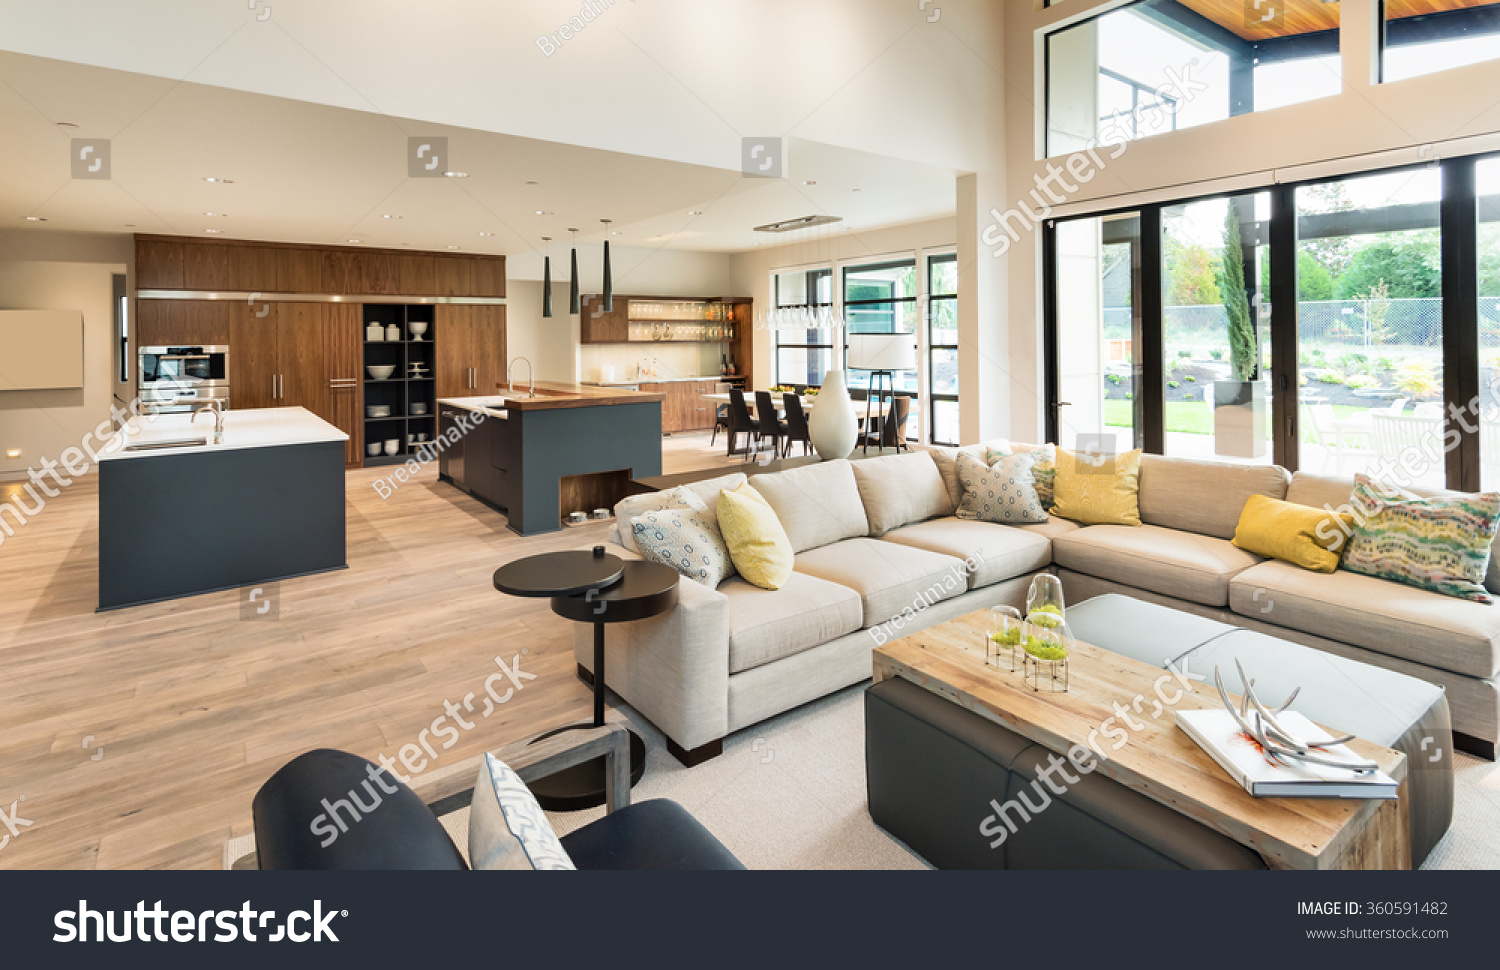 Beautiful living room interior new luxury stock photo 360591482 shutterstock - Beautiful house interior living room ...